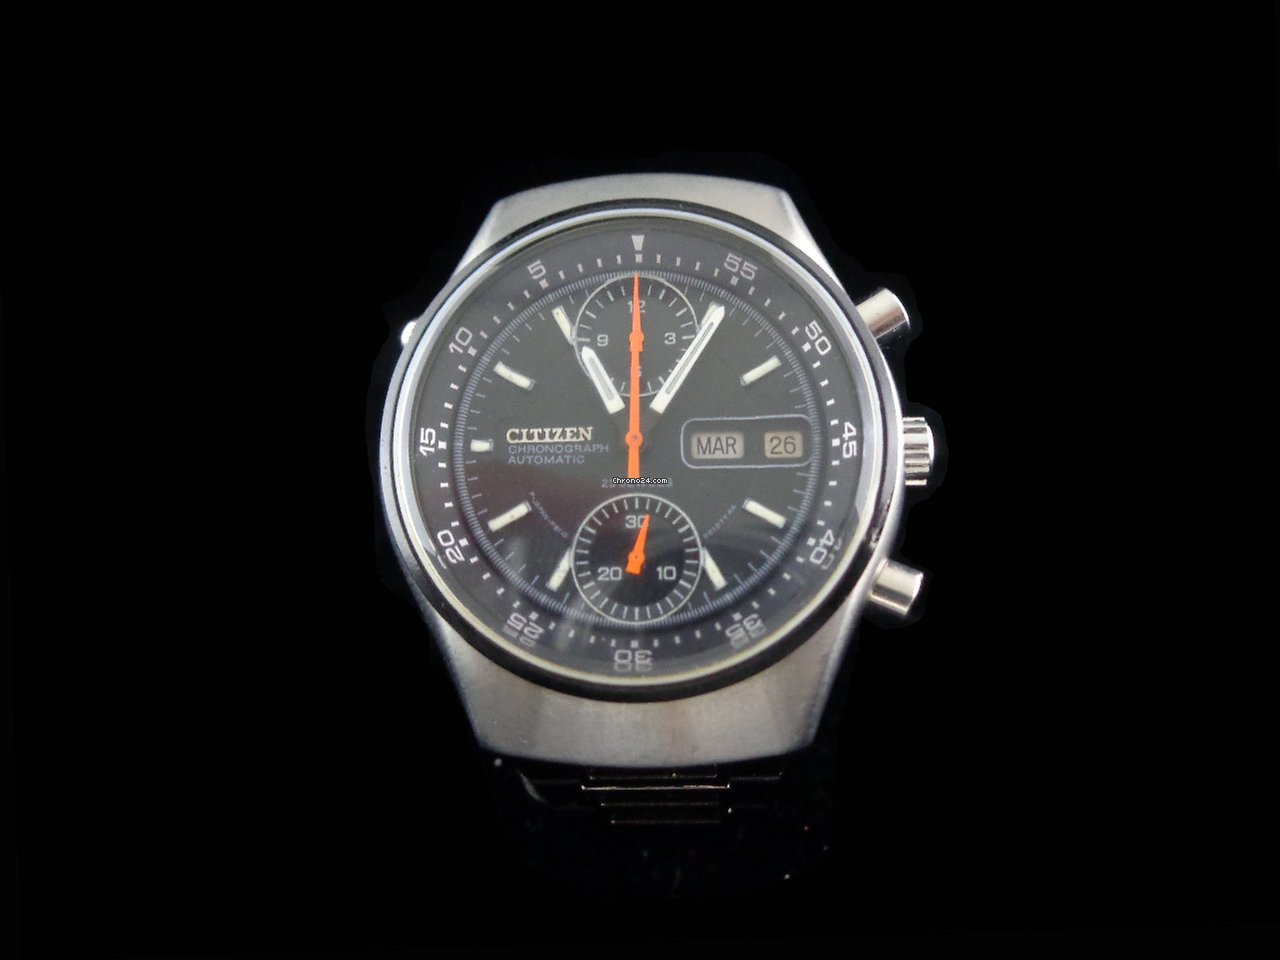 f980e04aff5 Pre-Owned Citizen Watches for Sale - Explore Watches at Chrono24